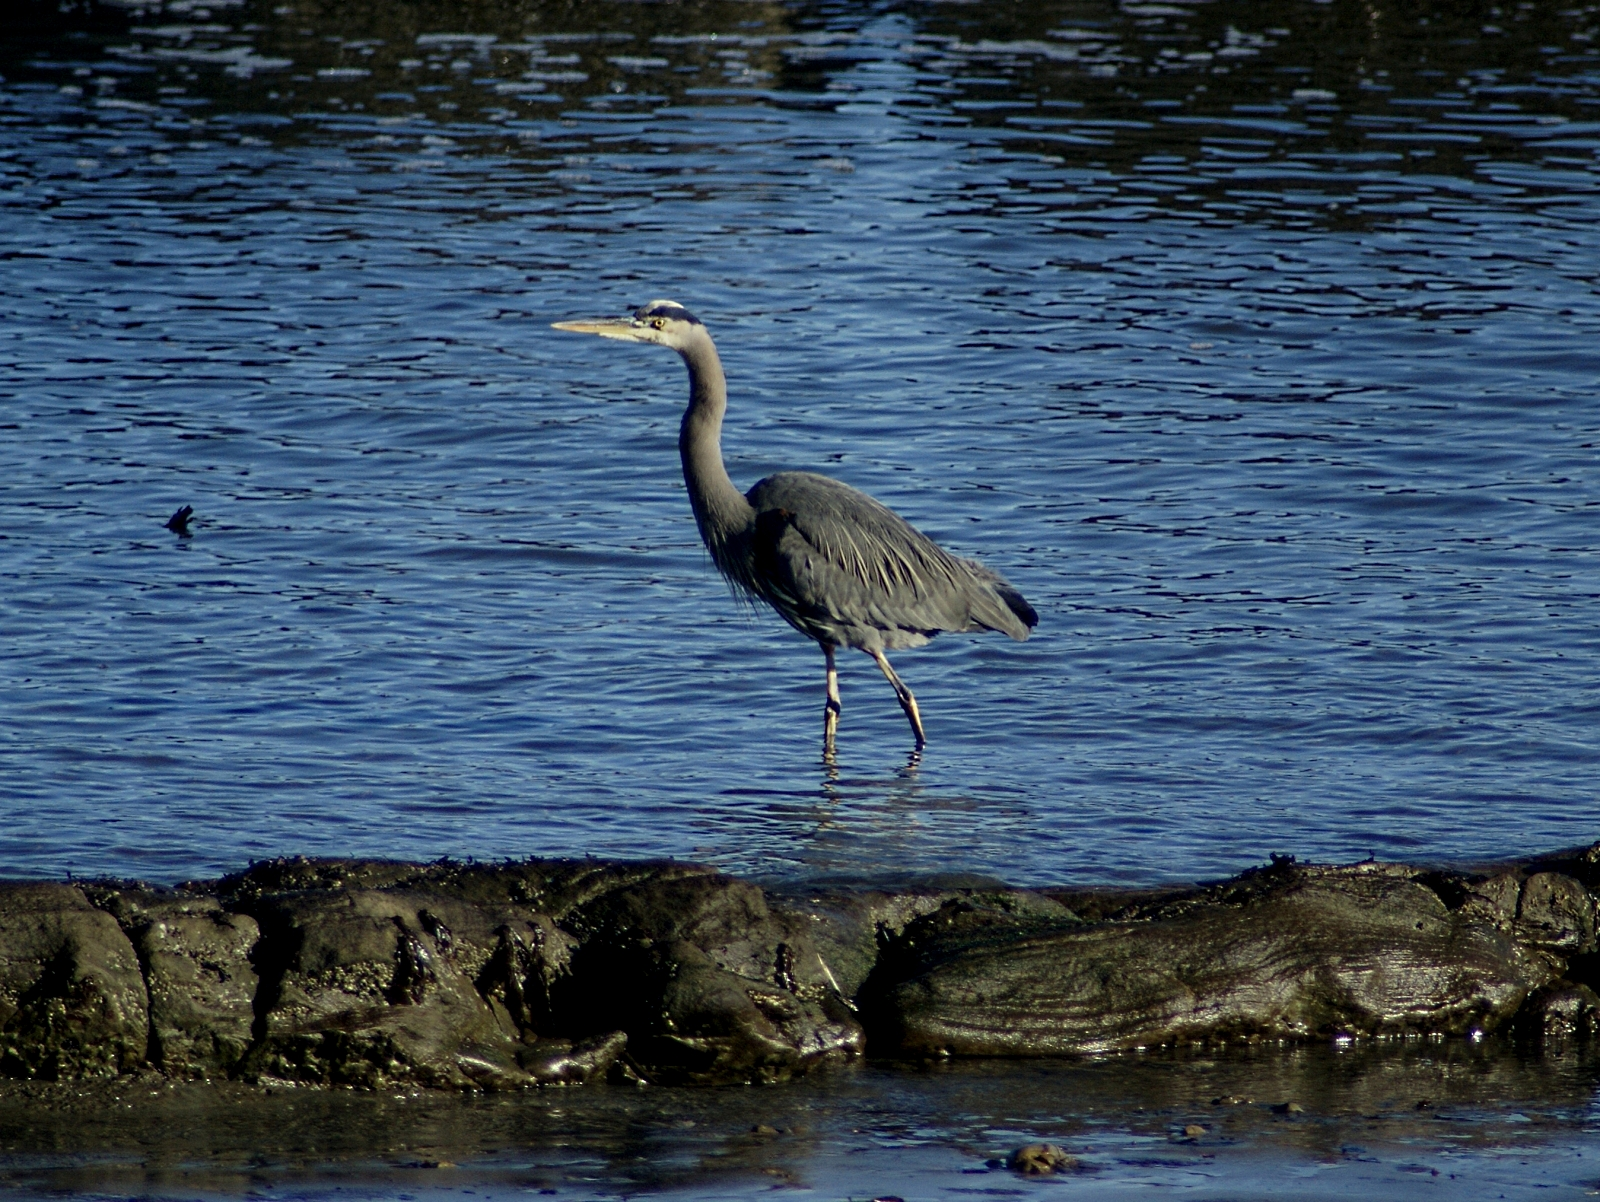 Heron off the deck